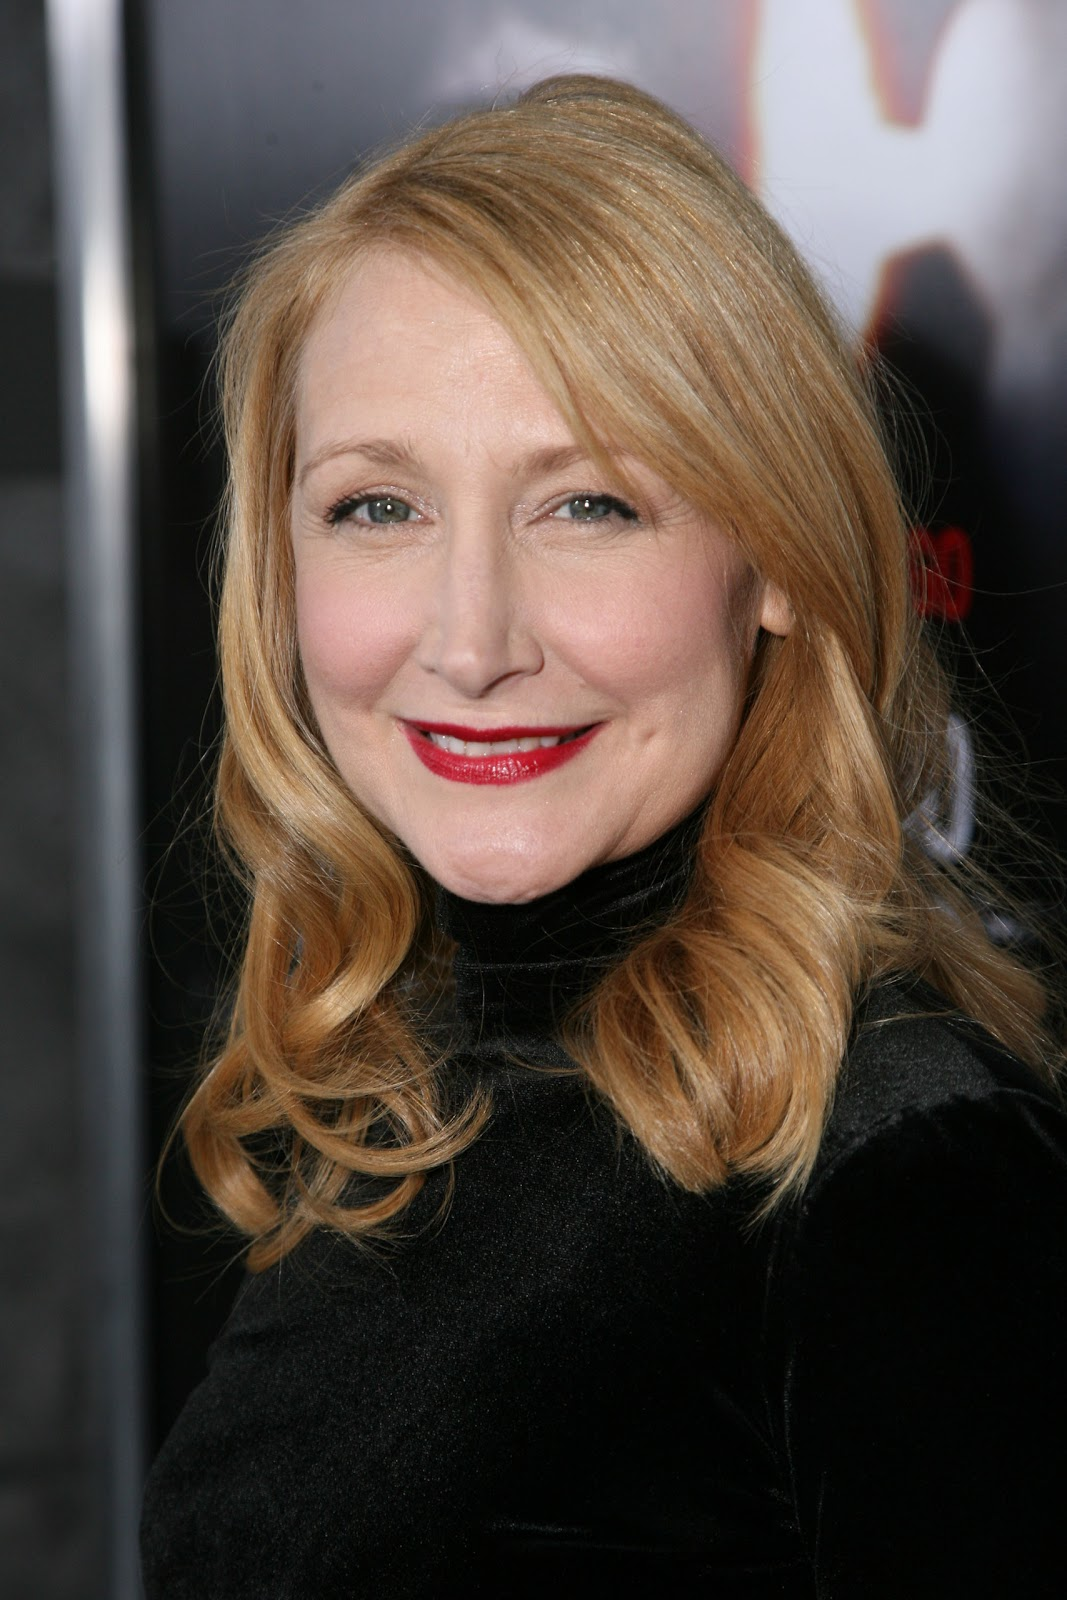 Patricia Clarkson   Biography, Career, Movies, Net Worth